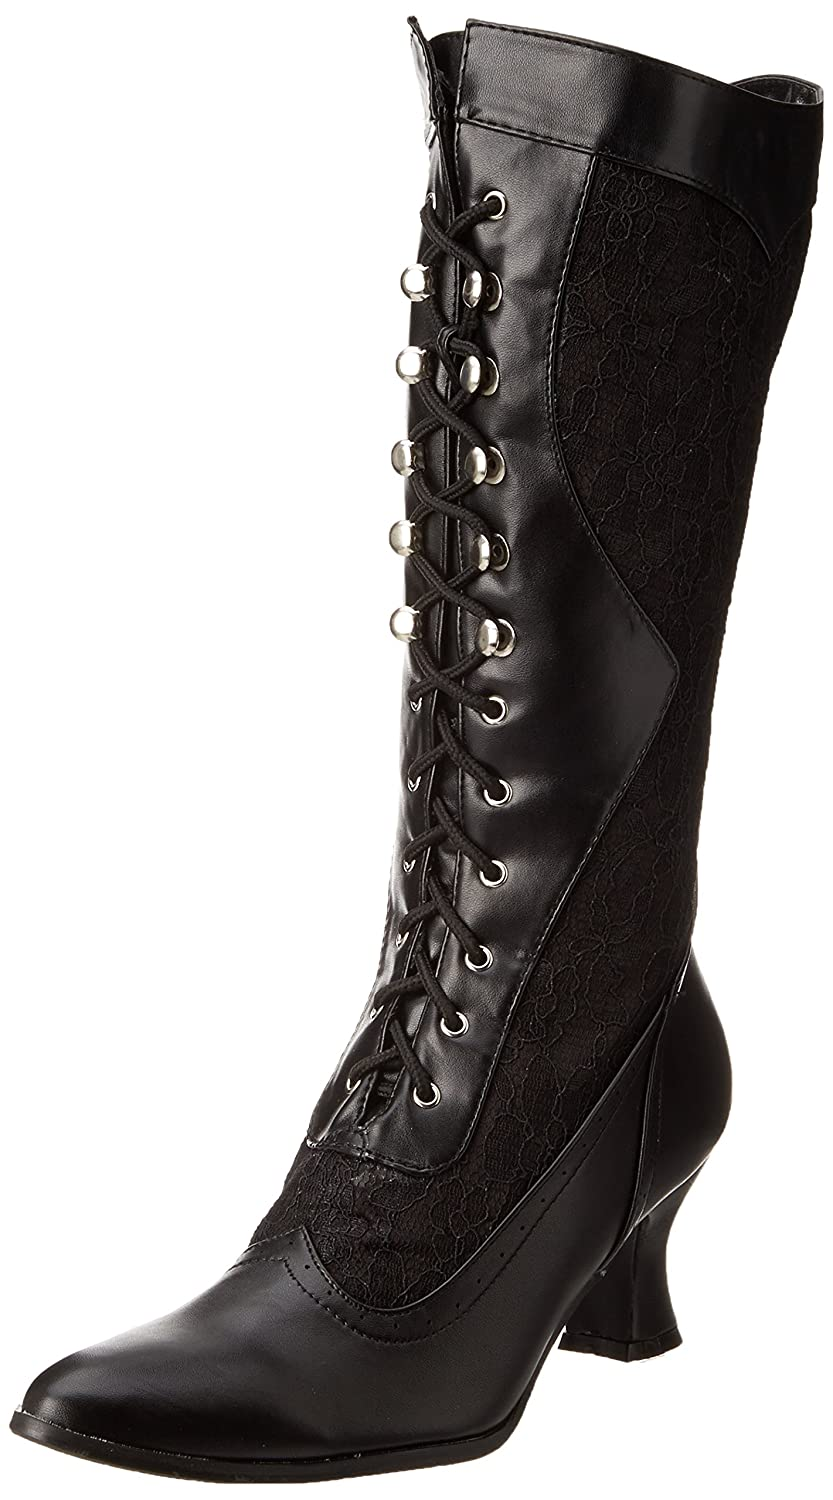 Vintage Boots- Winter Rain and Snow Boots Rebecca Lace Heel Boot $52.00 AT vintagedancer.com